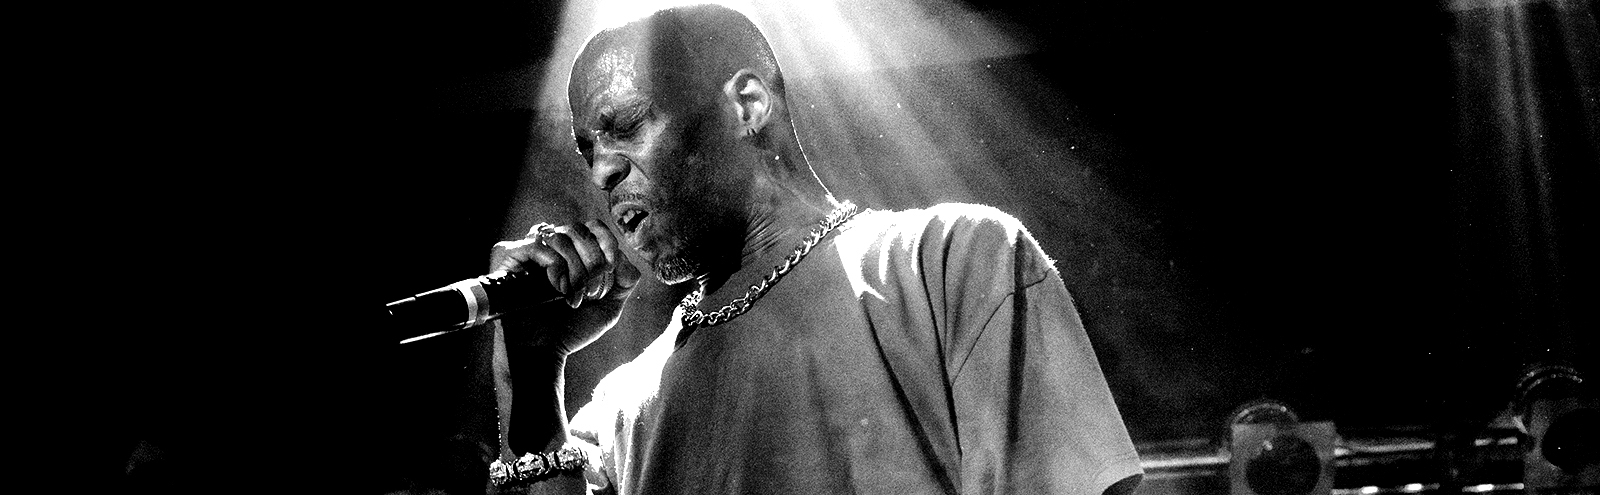 DMX Showed The World The Soul Of A Man Through His Vulnerable, Triumphant Music